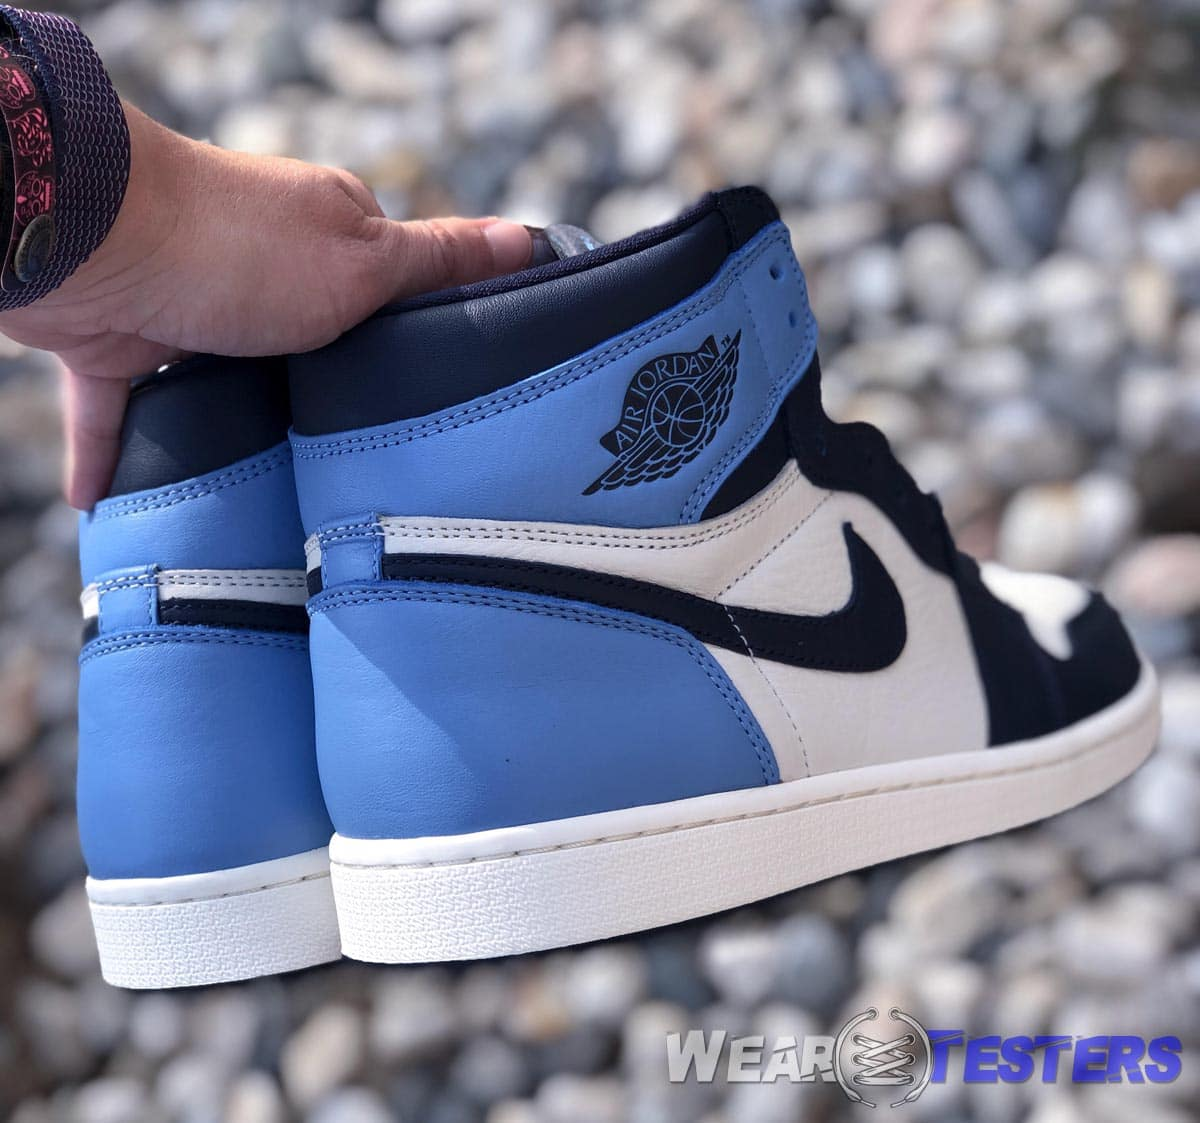 Air Jordan 1 Retro High Og Obsidian Detailed Look And Review